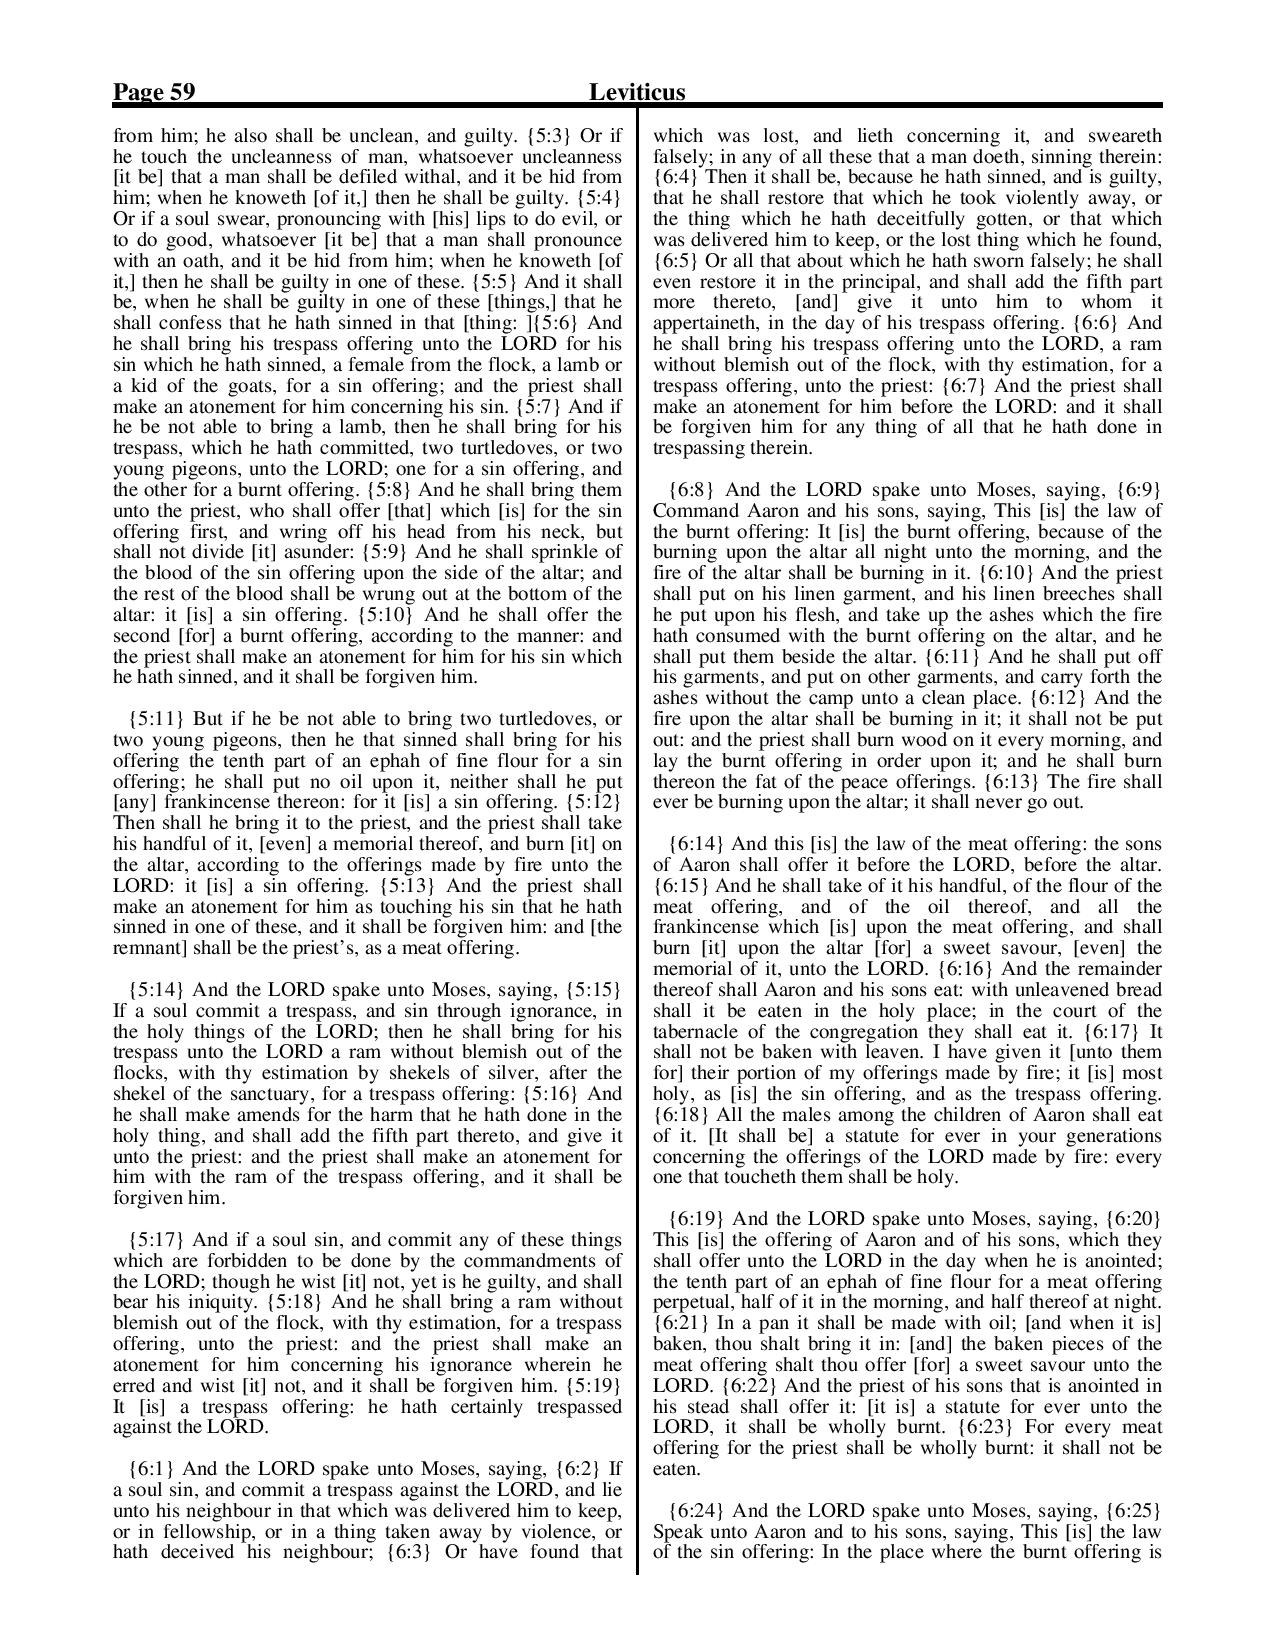 King-James-Bible-KJV-Bible-PDF-page-080